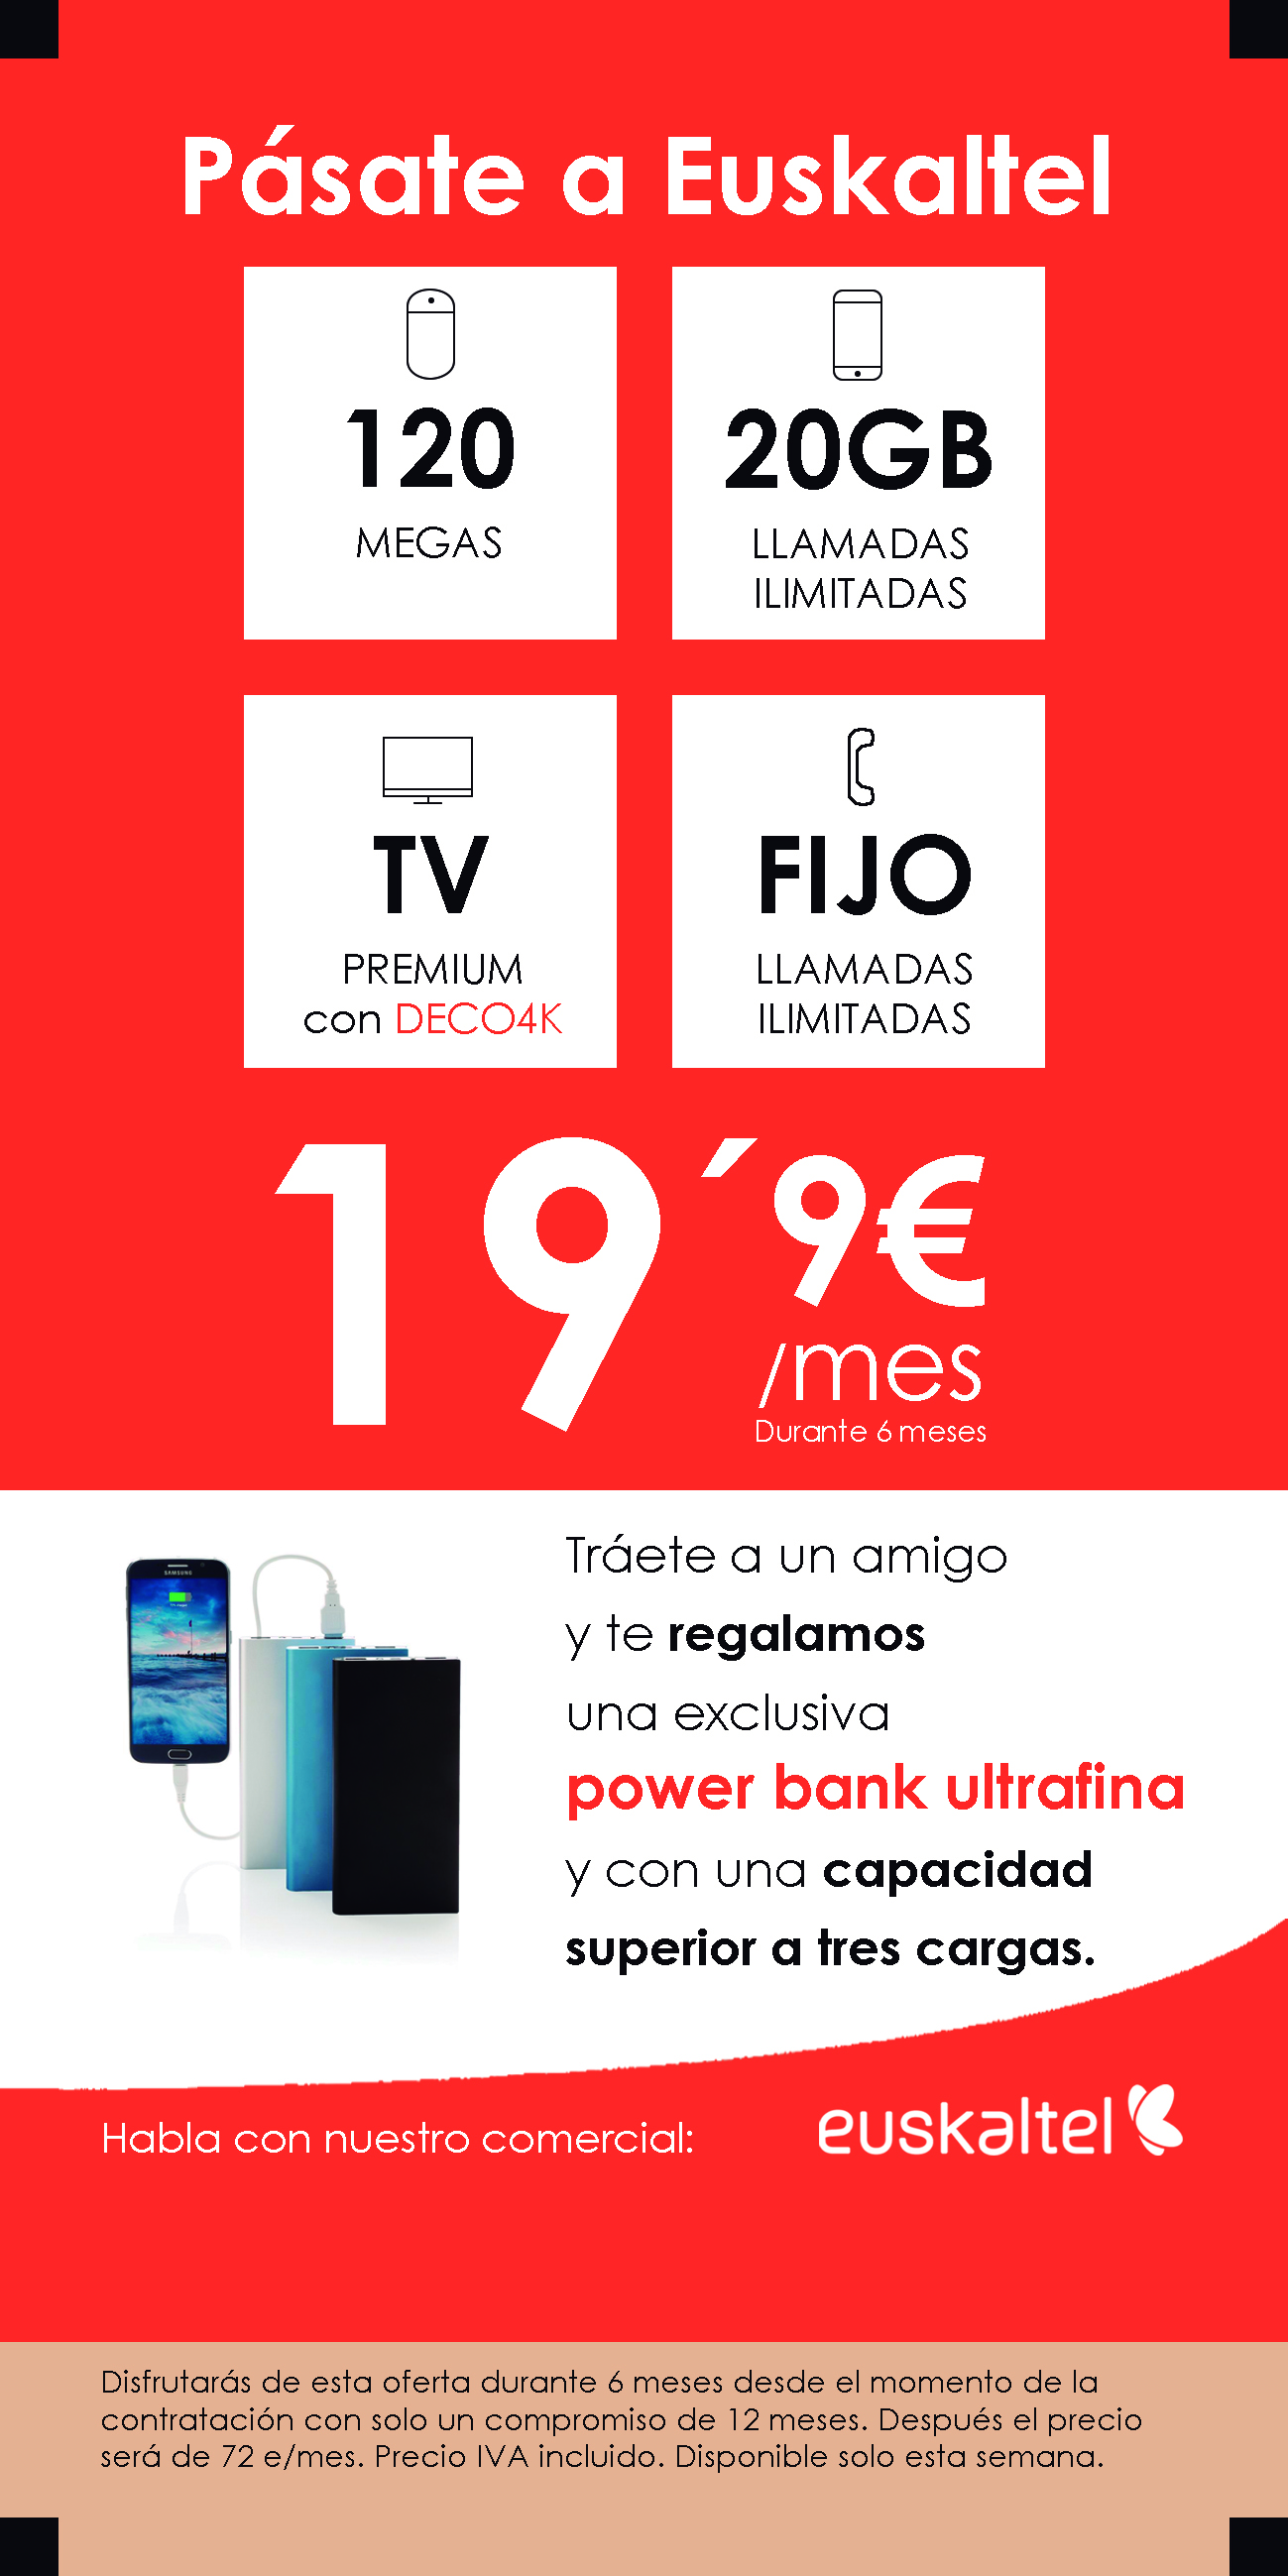 Tráete a un amigo y te regalamos una power bank ultra fina